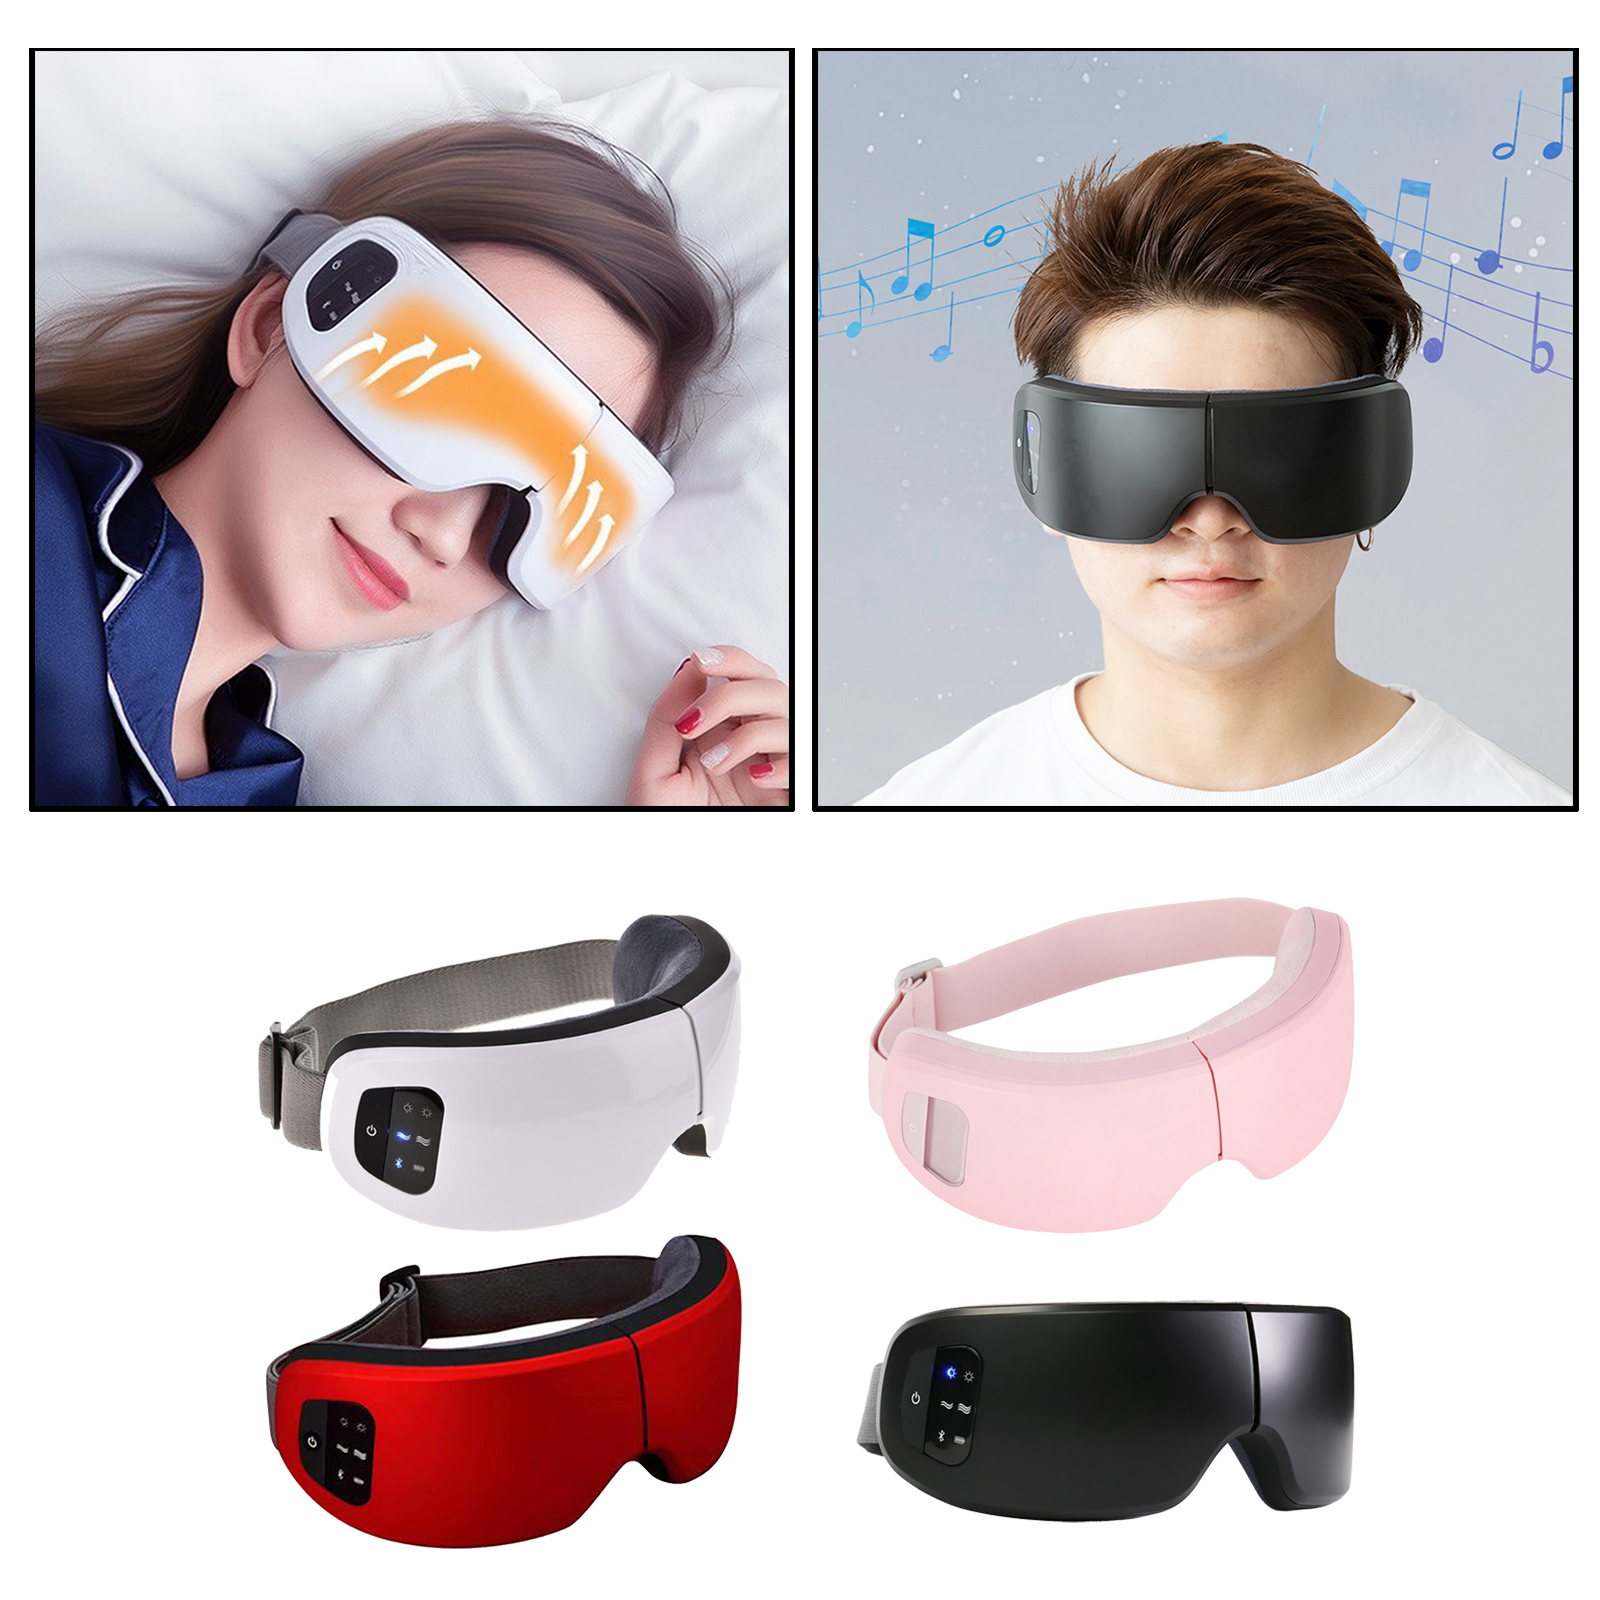 Rechargeable USB Heating Wireless Electric Eye Massager Mask Bluetooth Music